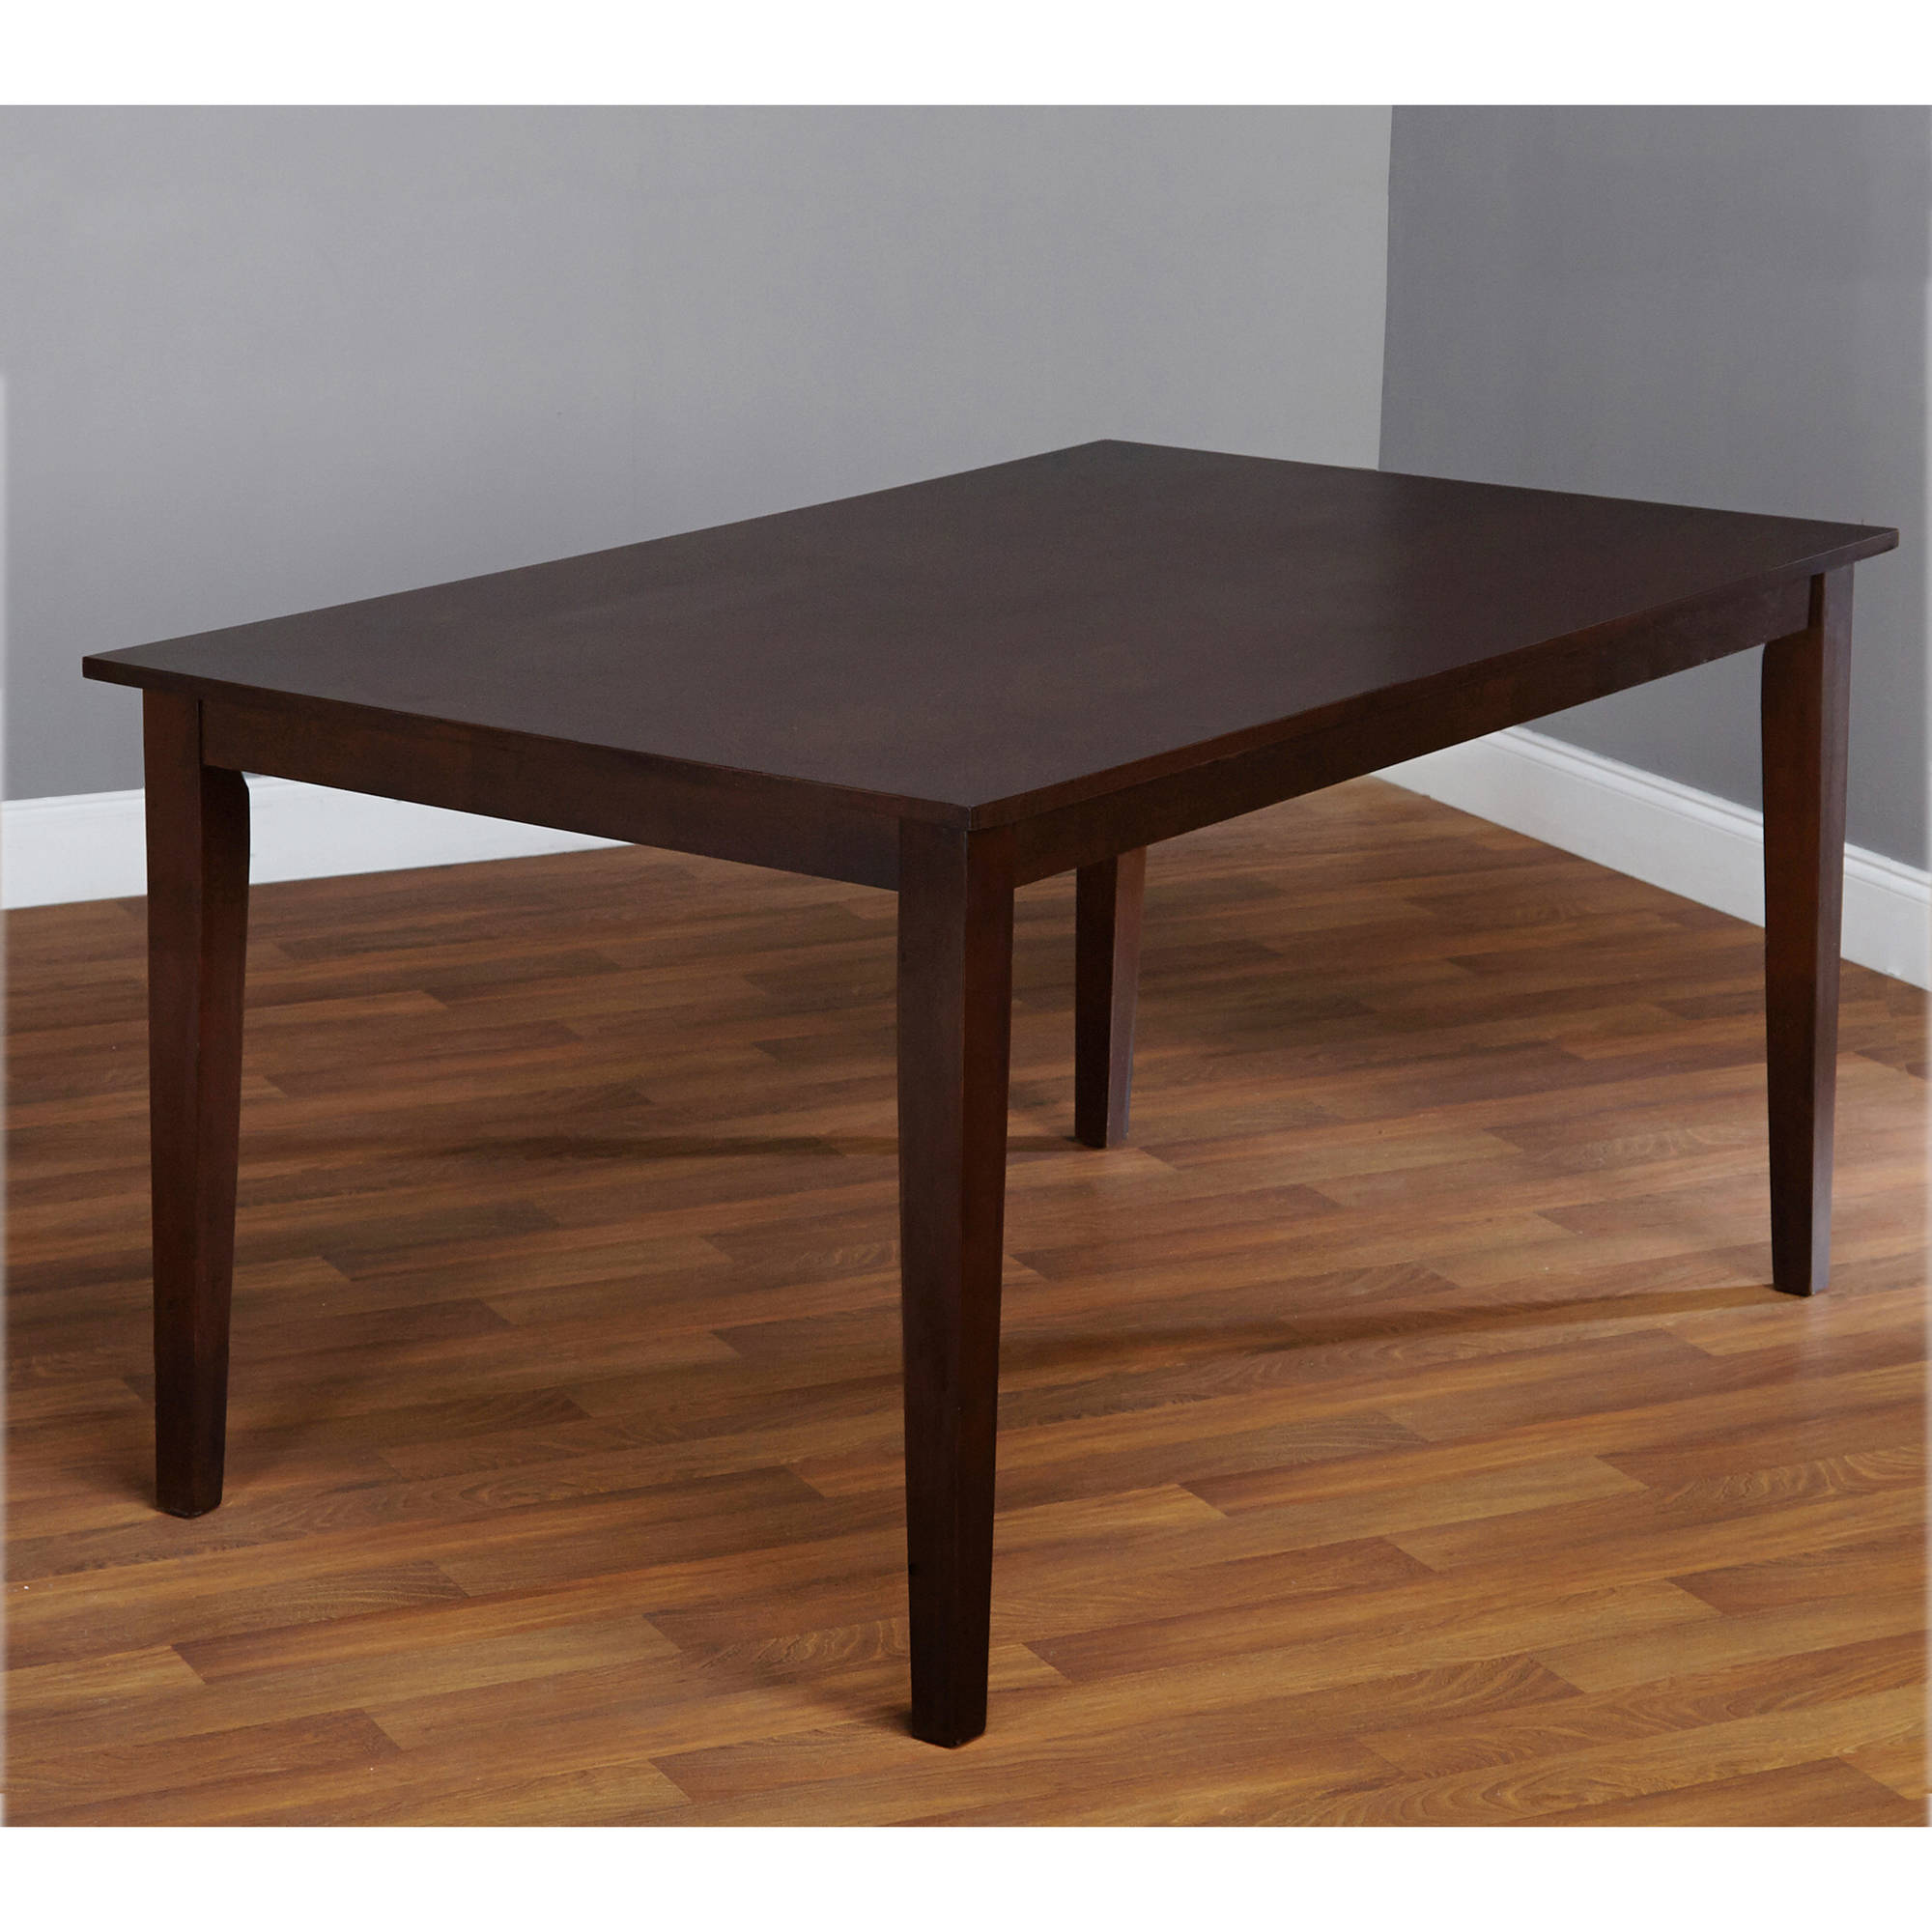 Contemporary Large Dining Table, Espresso